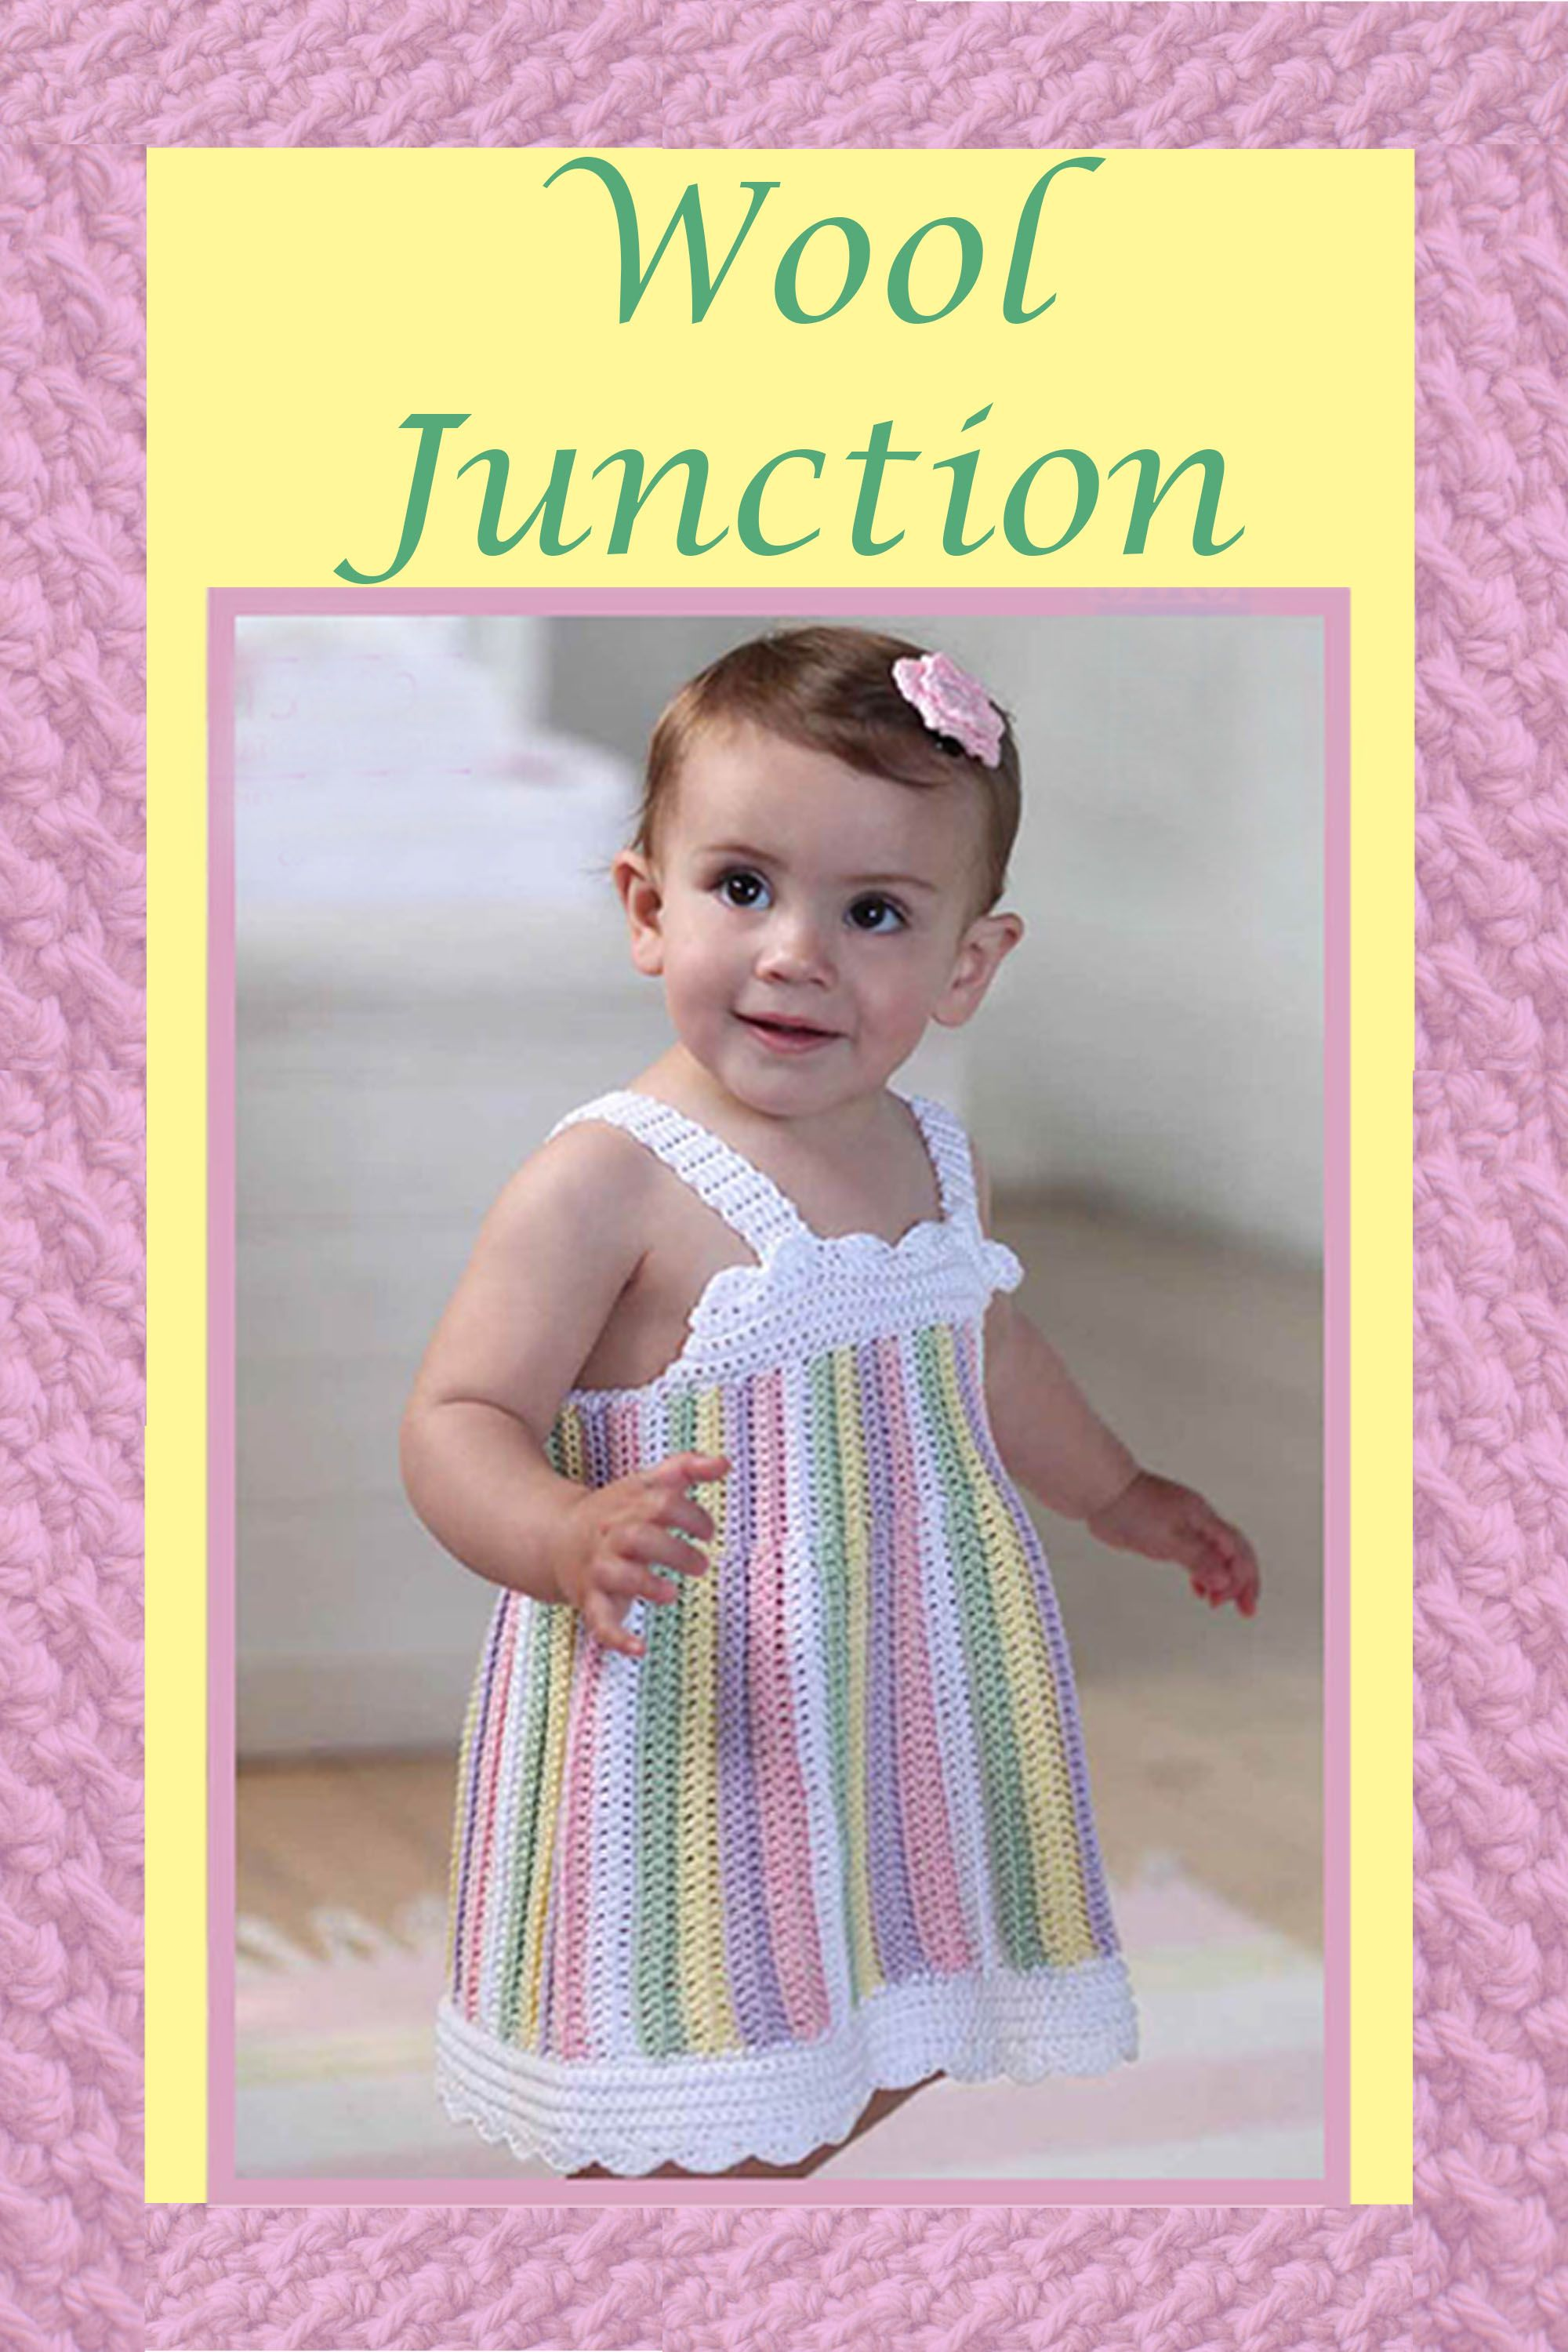 Toddler Crochet Dress Kit Available from www.wooljunction.co.za ...